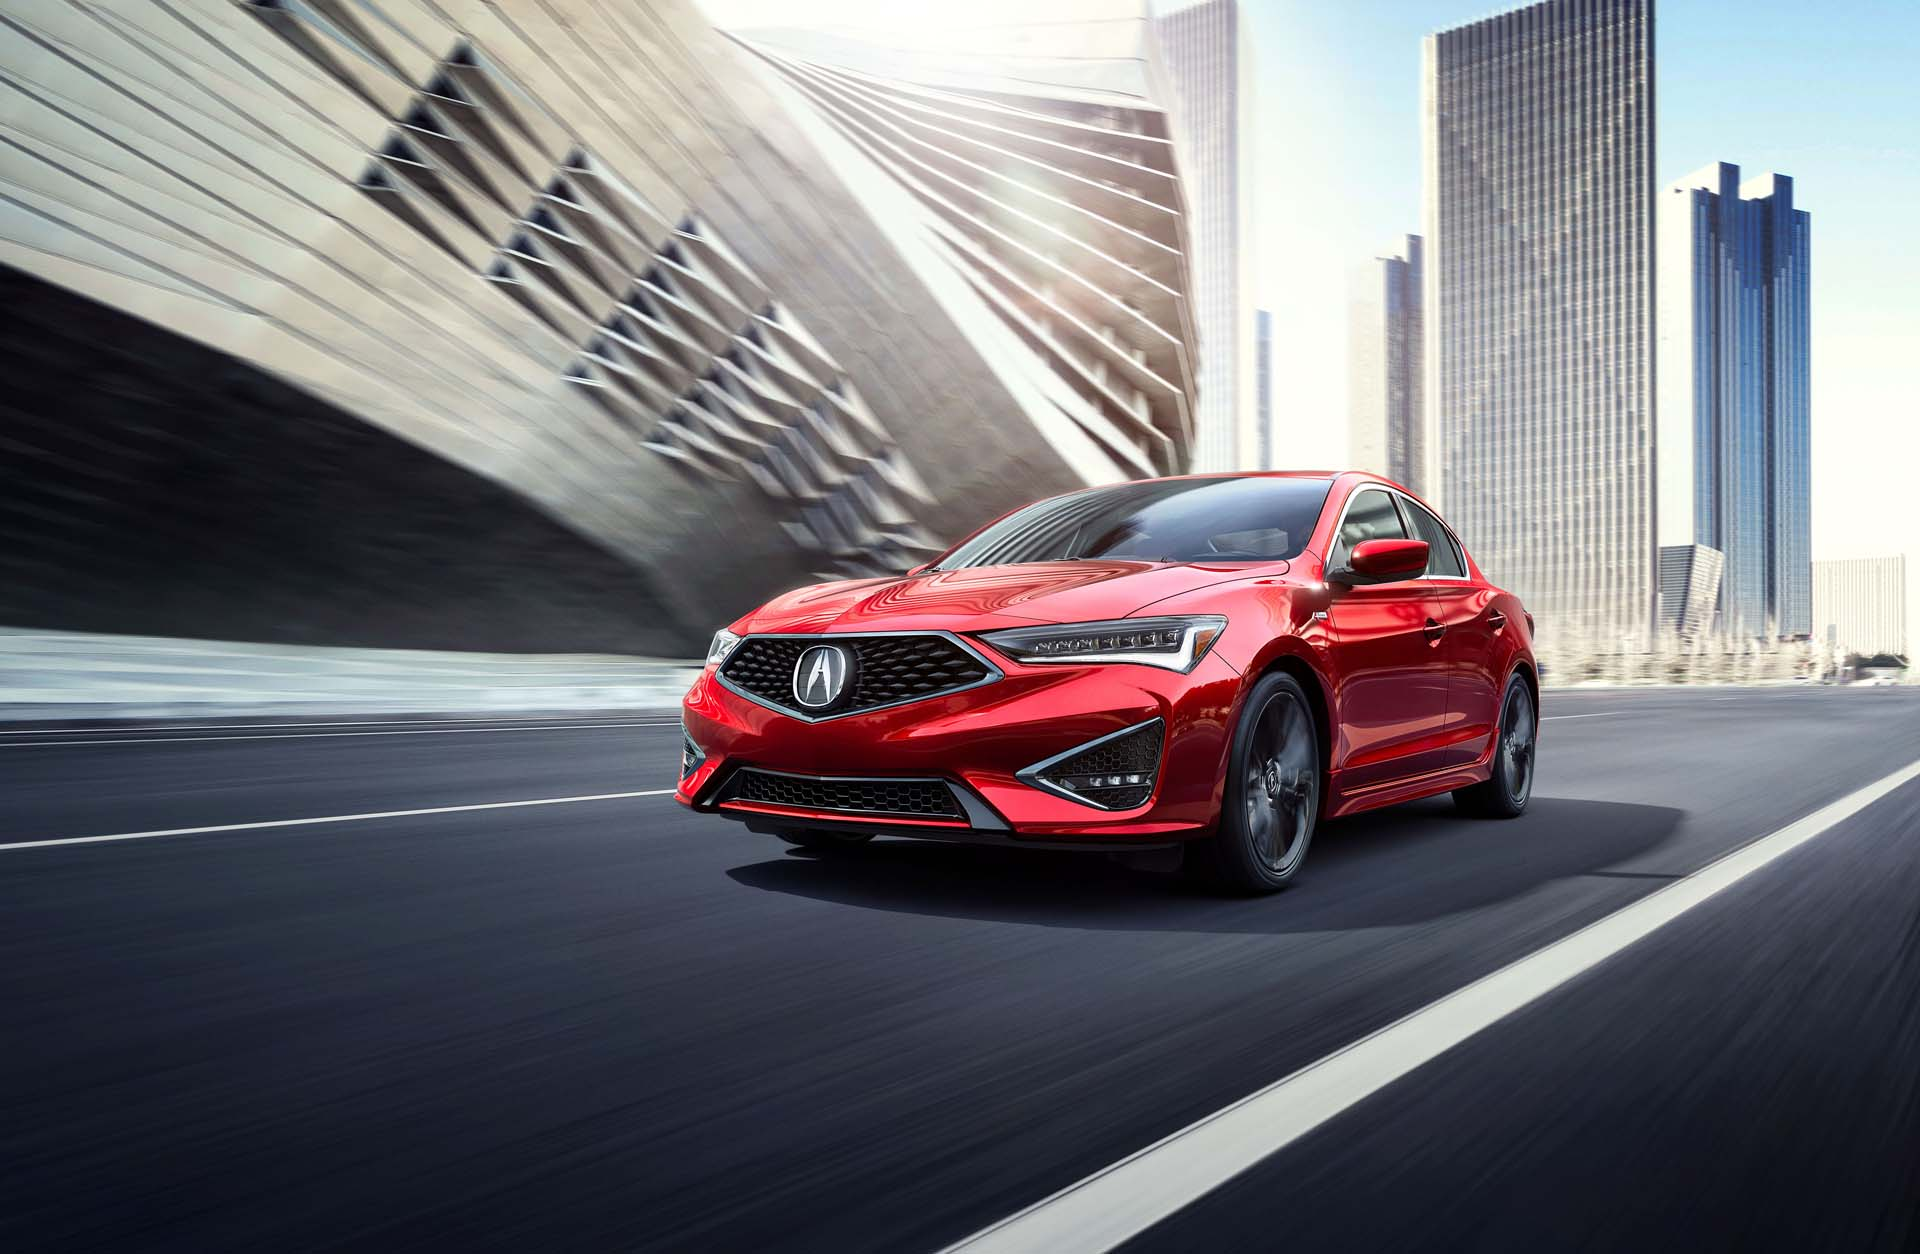 Does the 2019 Acura ILX Include Apple CarPlay and Android Auto?